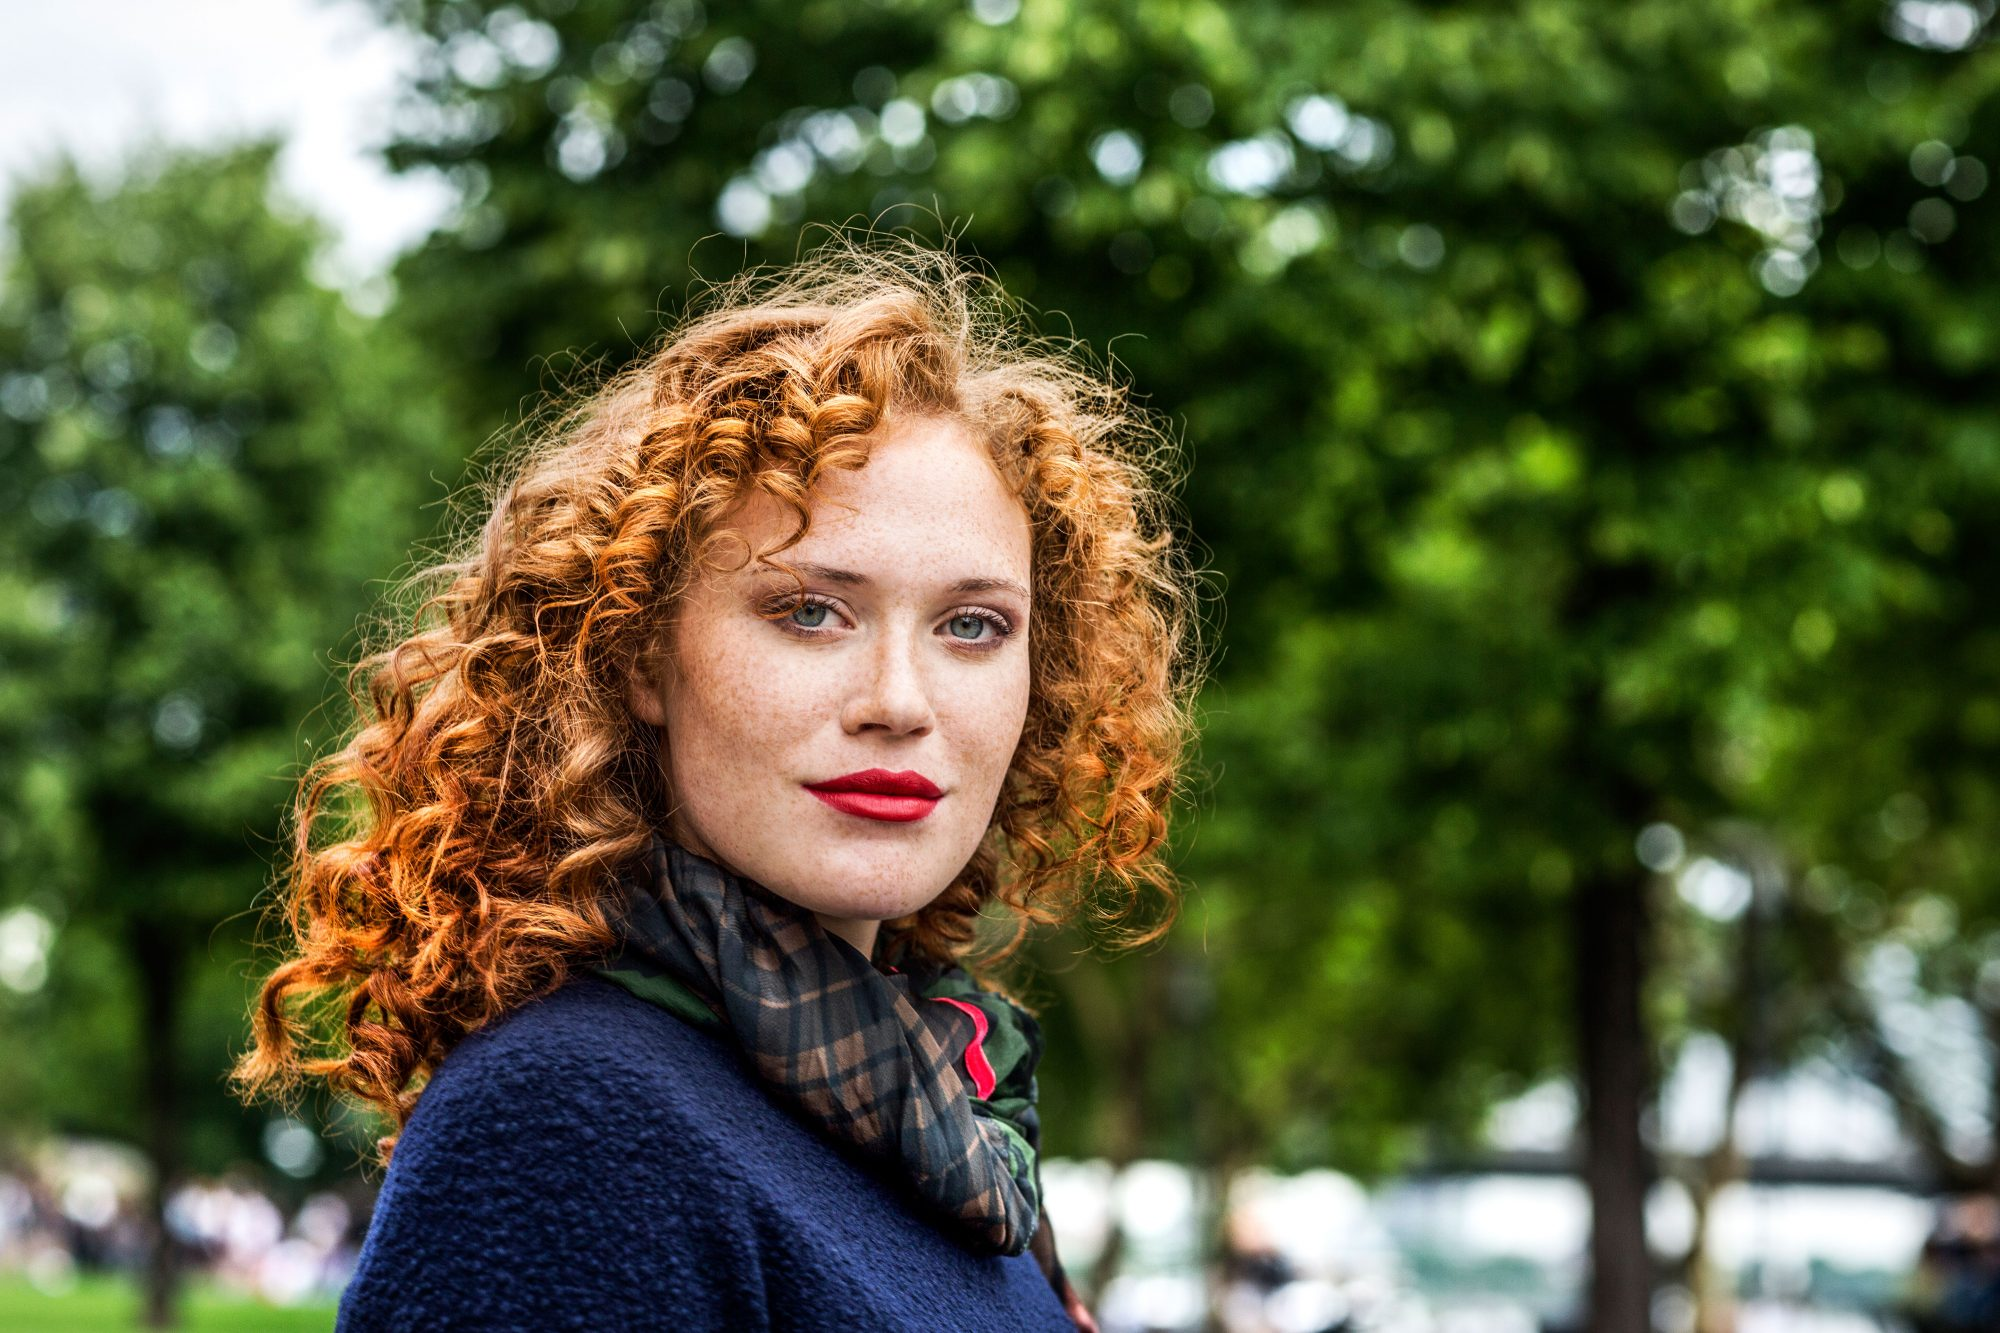 Woman with Curly Red Hair and Lipstick